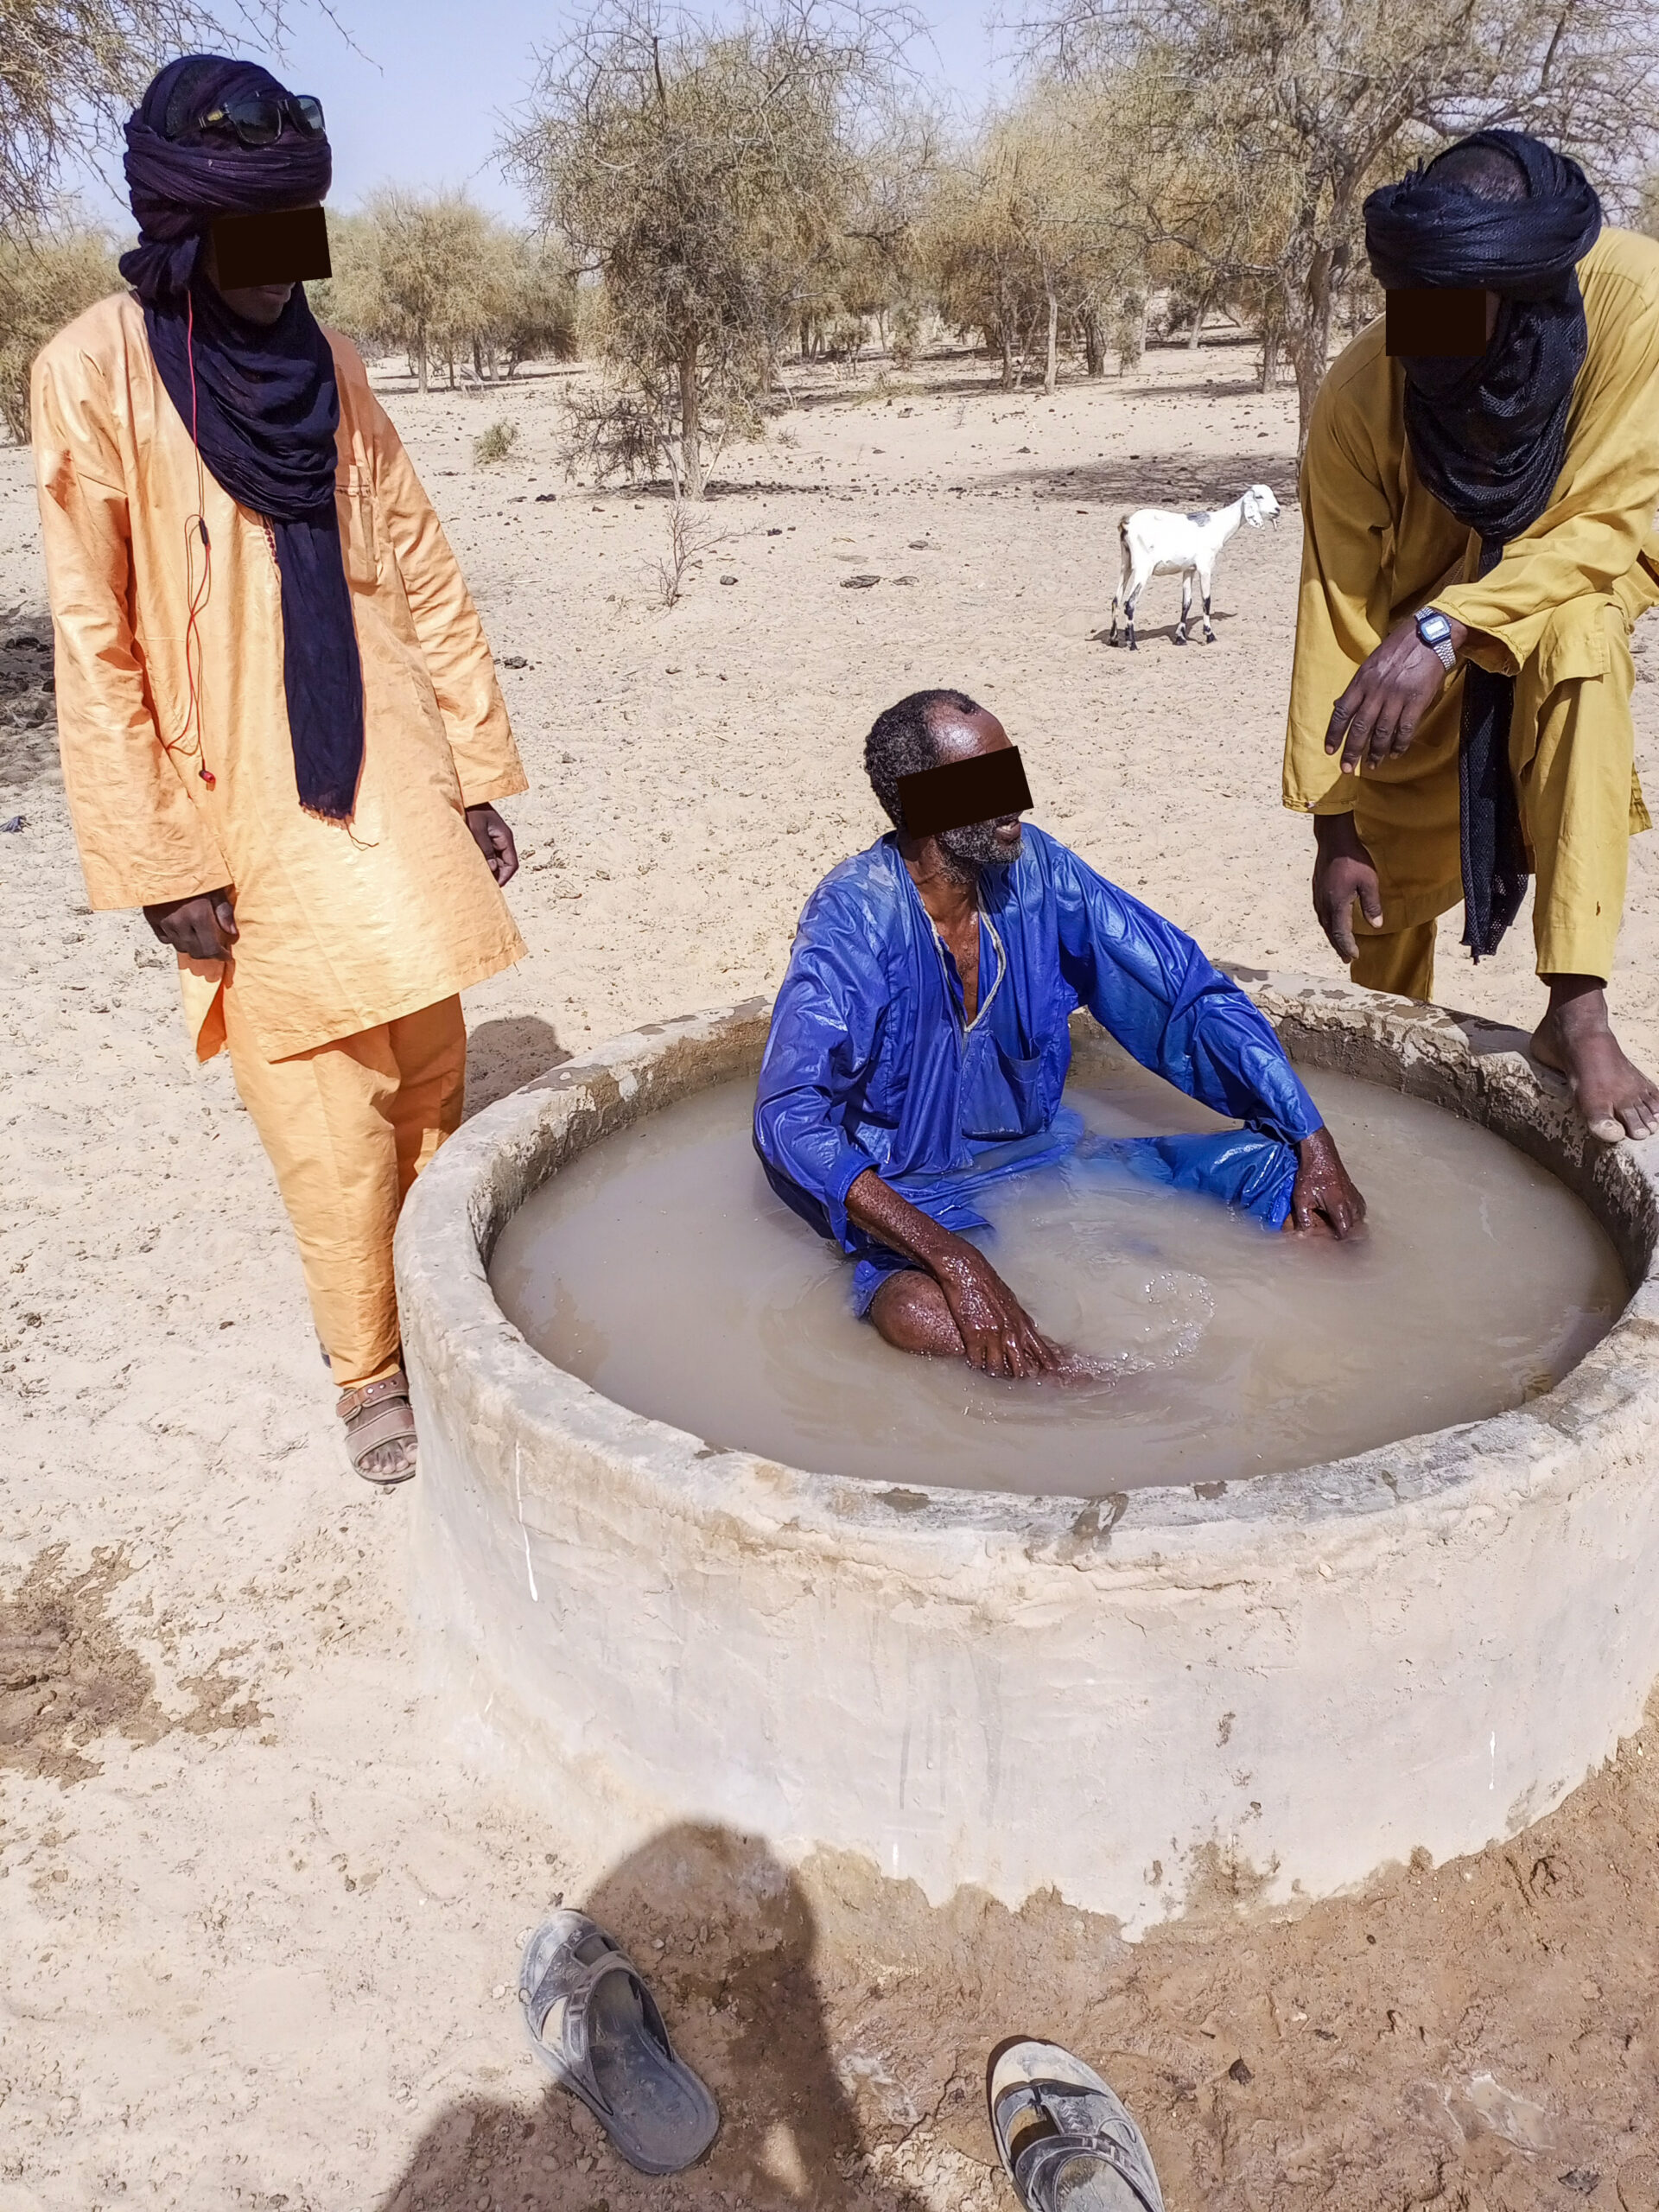 NIGER | AUG. 2, 2021 — From Atheism to Joy in Christ